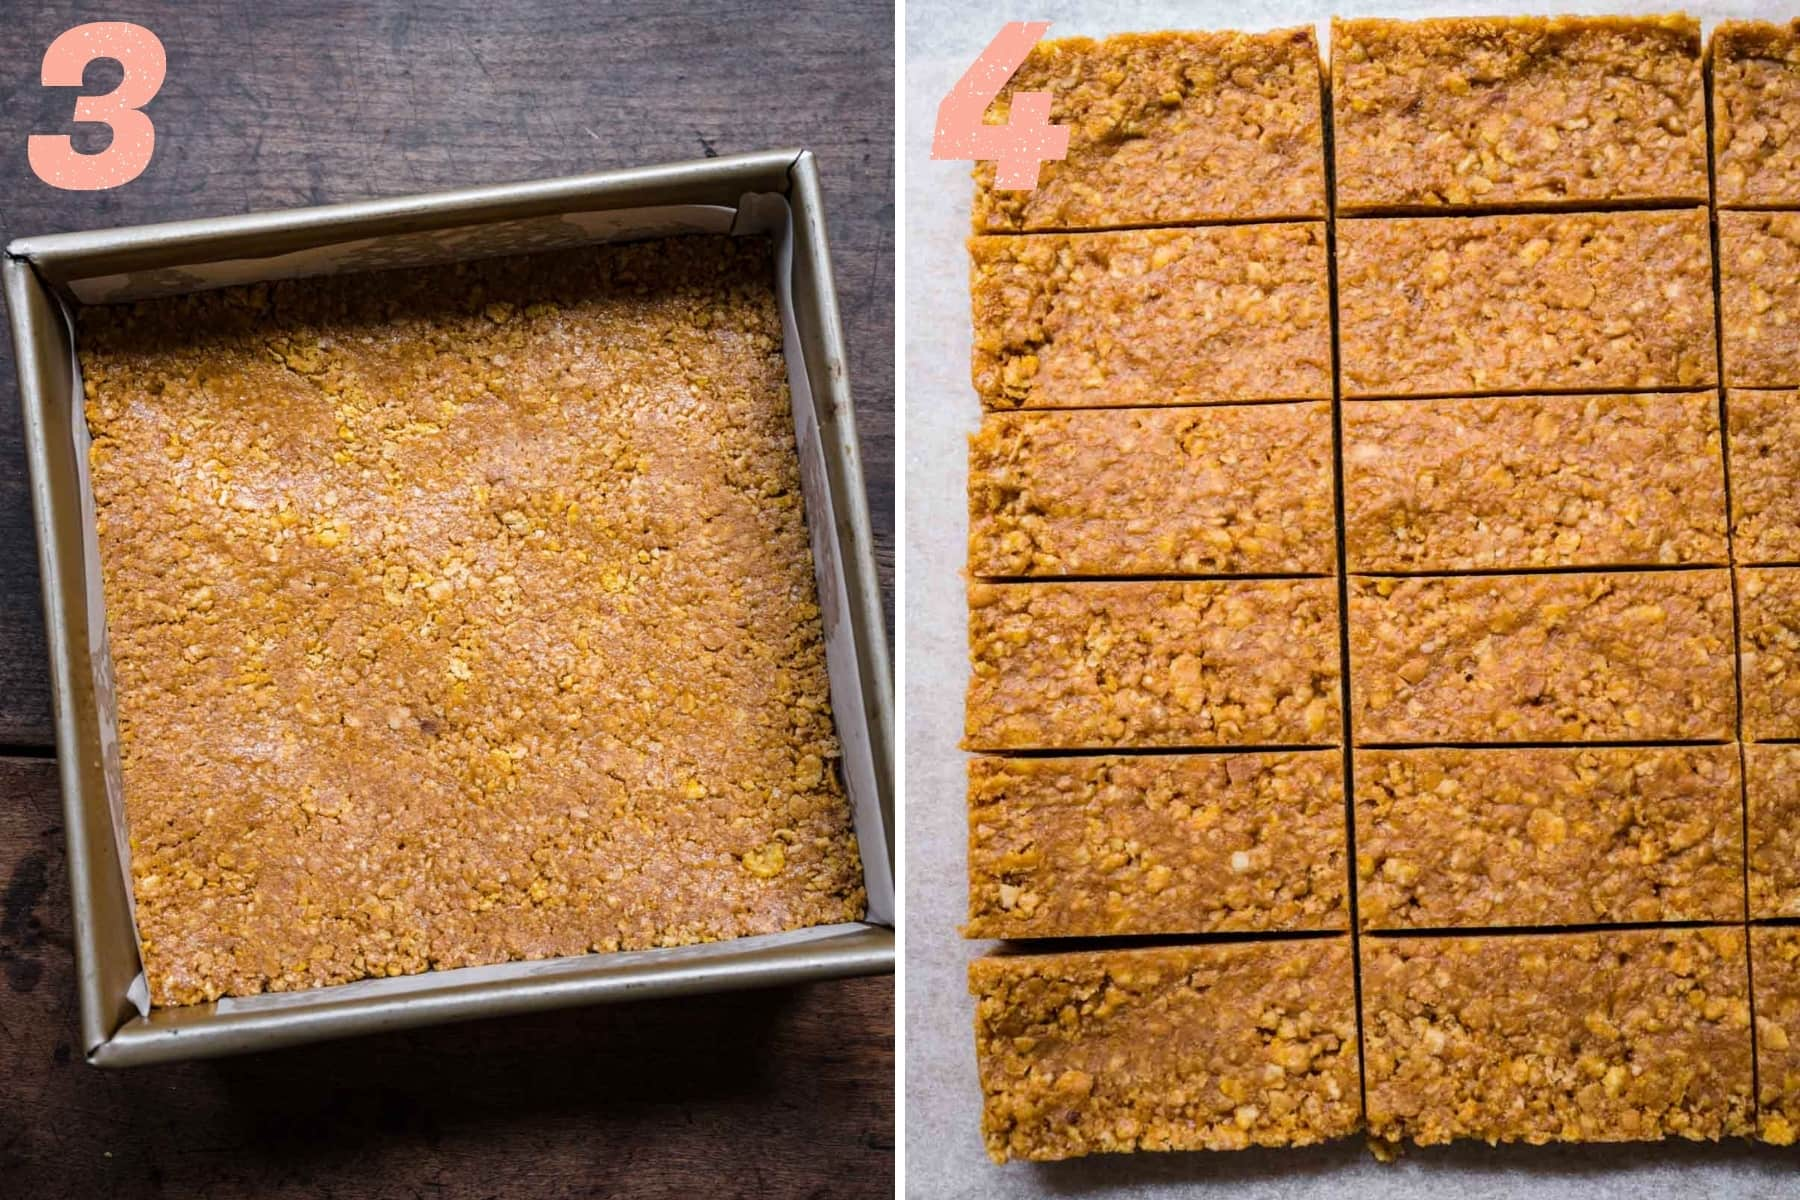 On the left: mixture flattened out into a sheet pan. On the right: mixture cut into rectangles.